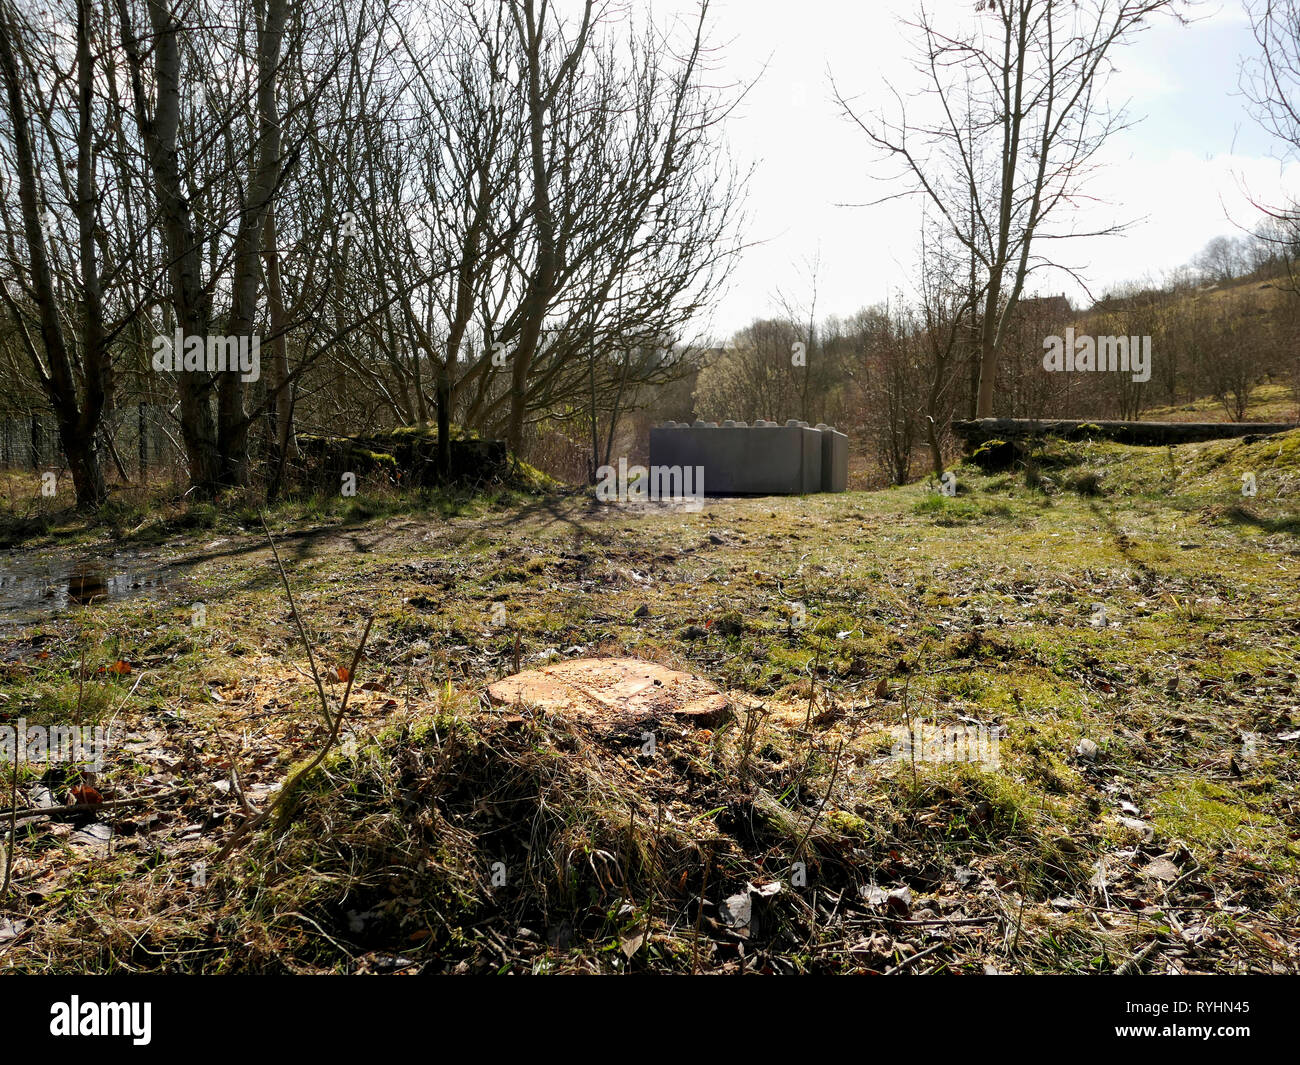 Stoney Wood, Wirksworth, Derbyshire, UK. 14th March, 2019. Trees cut down by Derbyshire Dales District Council to make way for a Gypsy Roma Traveller camp, threatening adjacent local wildlife scanctury, Stoney Wood, Wirksworth. Concrete blocks placed on the carpark to protect Wirksworth beauty spot owned by Wirksworth Town Council (Labour) after Derbyshire Dales District Council (Conservative) voted on relocating a GRT Travellers camp on disputed land adjacent to Stoney Wood, Wirksworth, Derbyshire Dales. Credit: Doug Blane/Alamy Live News - Stock Image